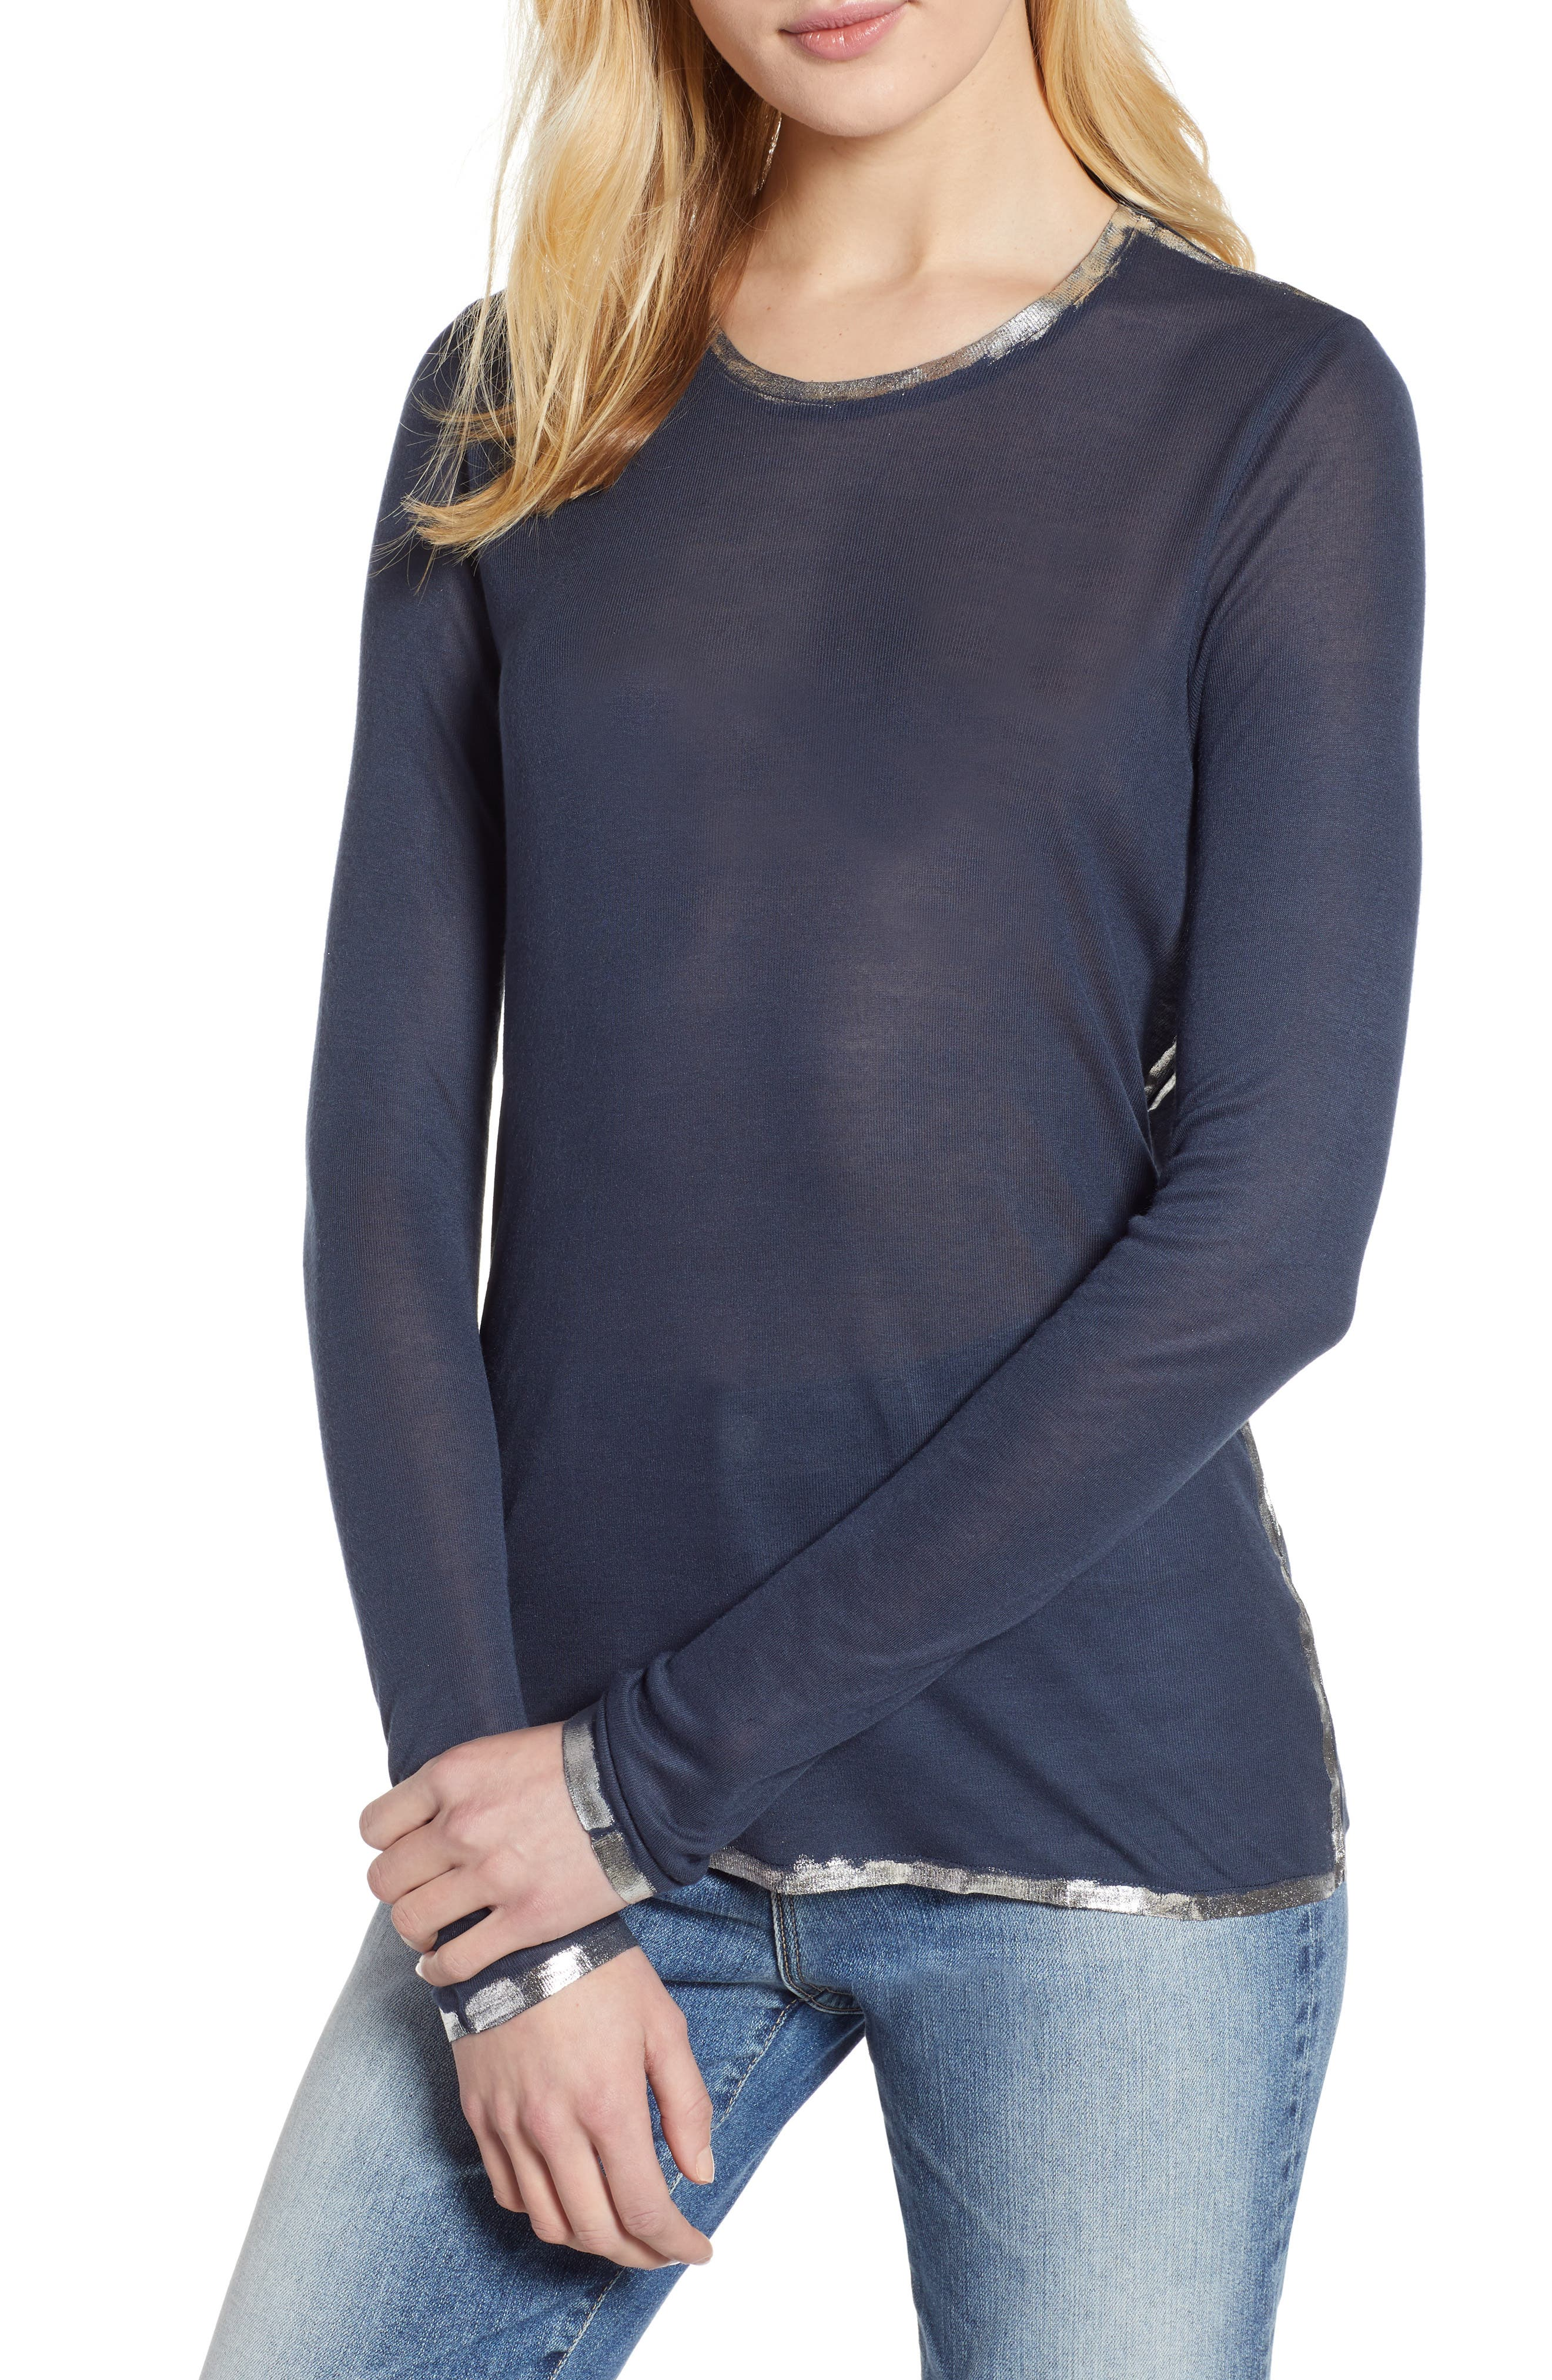 ZADIG & VOLTAIRE, Willy Foil Tee, Main thumbnail 1, color, MARINE